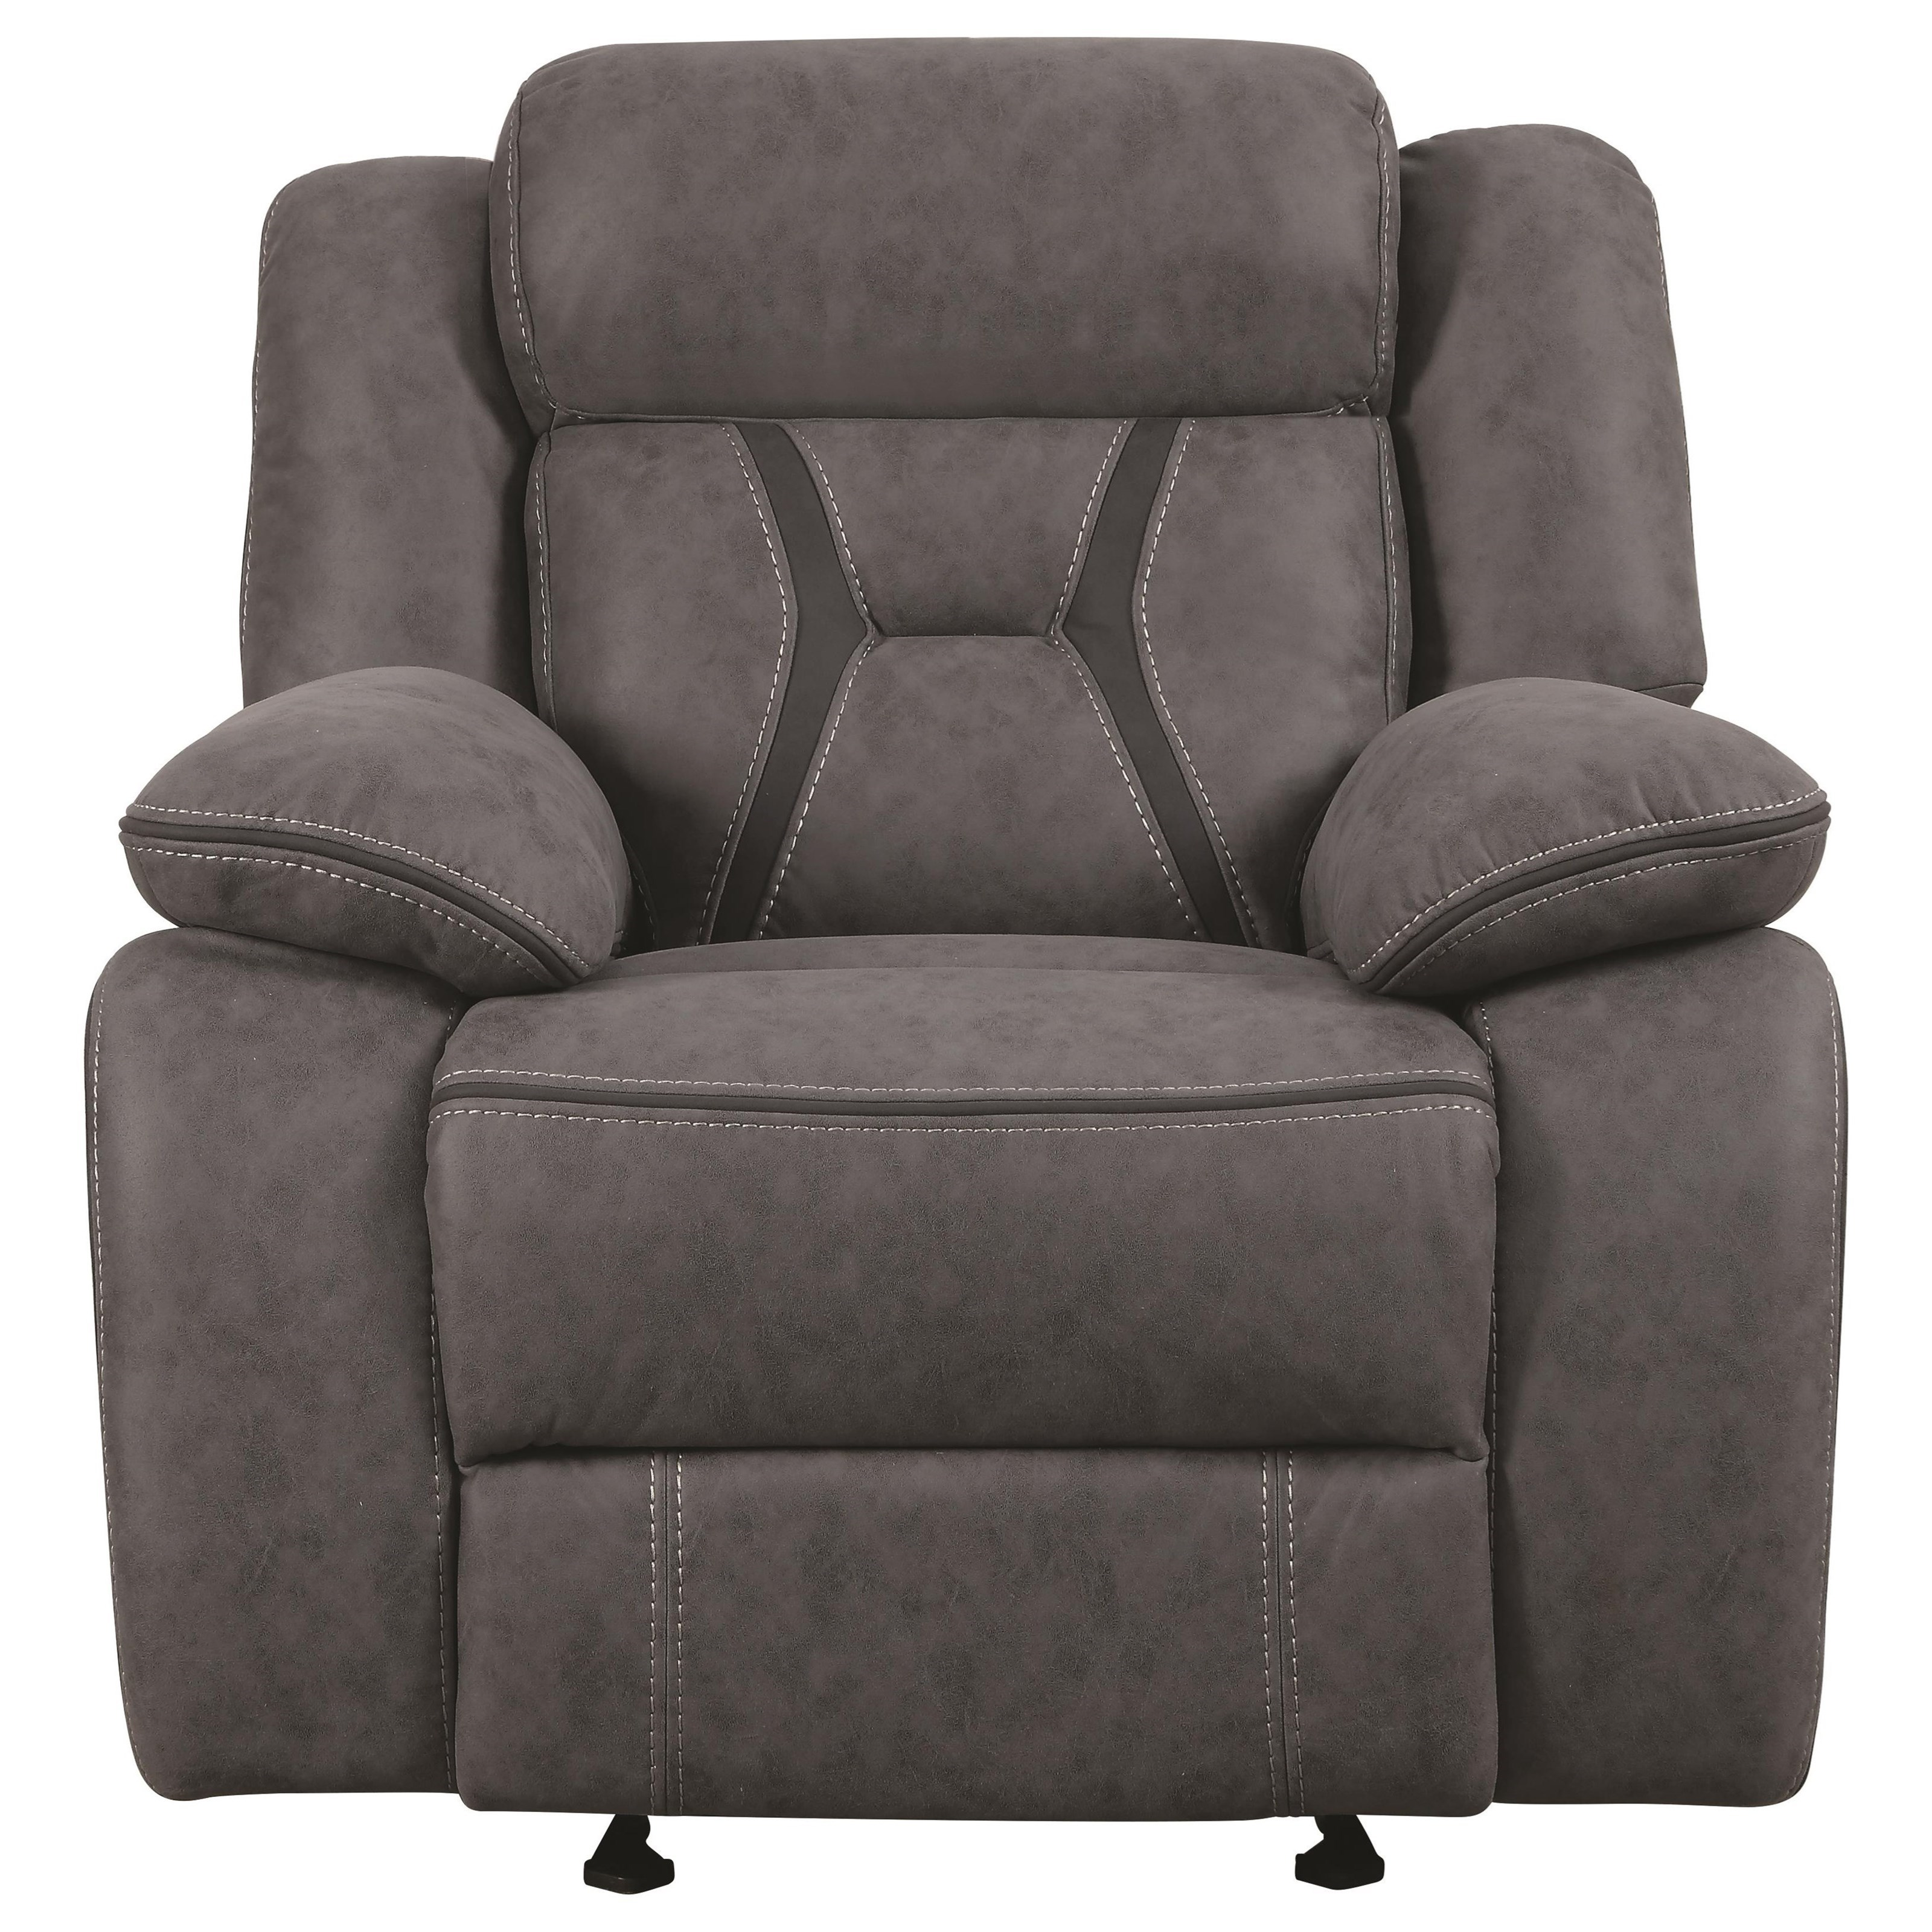 City Furniture Houston: Coaster Houston Casual Pillow-Padded Glider Recliner With